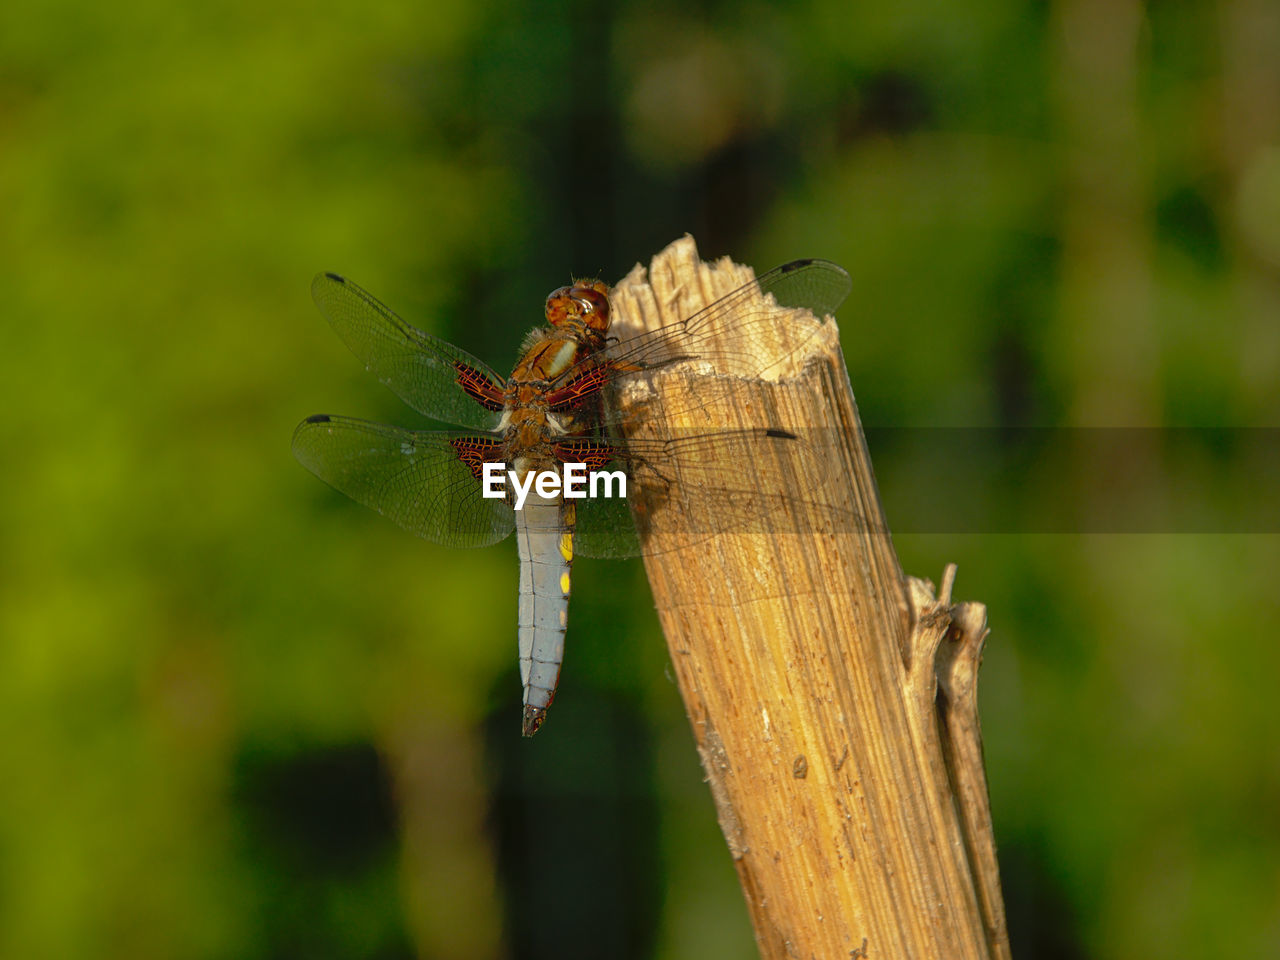 animal wildlife, animal, animals in the wild, animal themes, invertebrate, focus on foreground, one animal, insect, close-up, day, green color, no people, nature, plant, dragonfly, animal wing, outdoors, wood - material, grasshopper, zoology